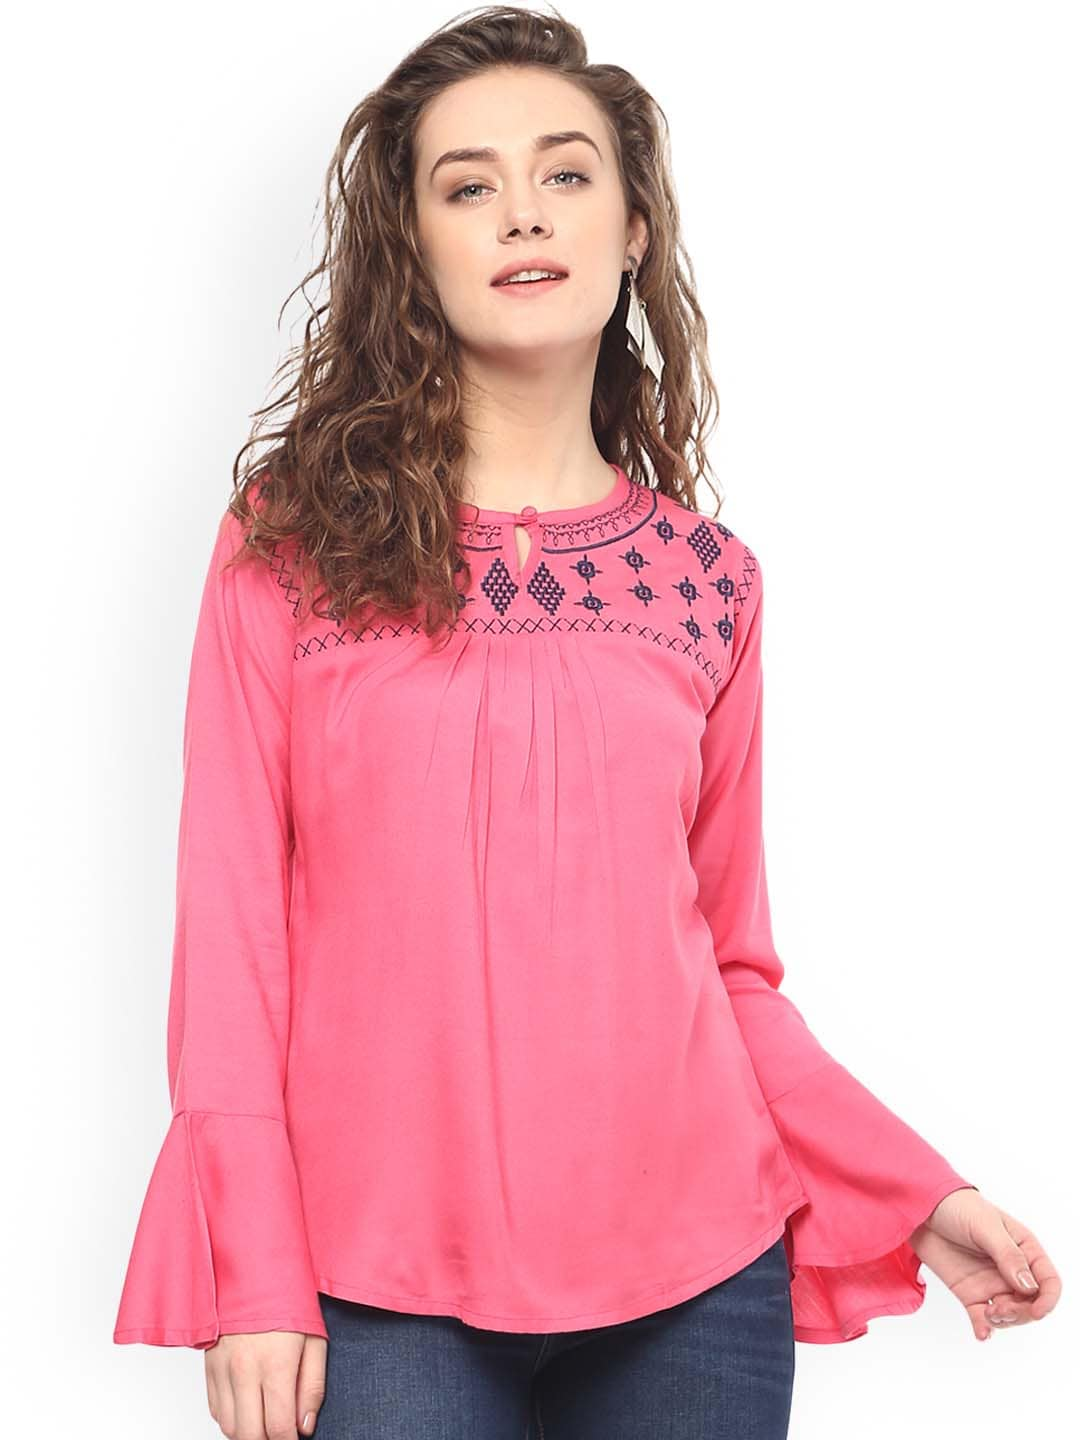 b4459a57e697d Tops - Buy Designer Tops for Girls   Women Online